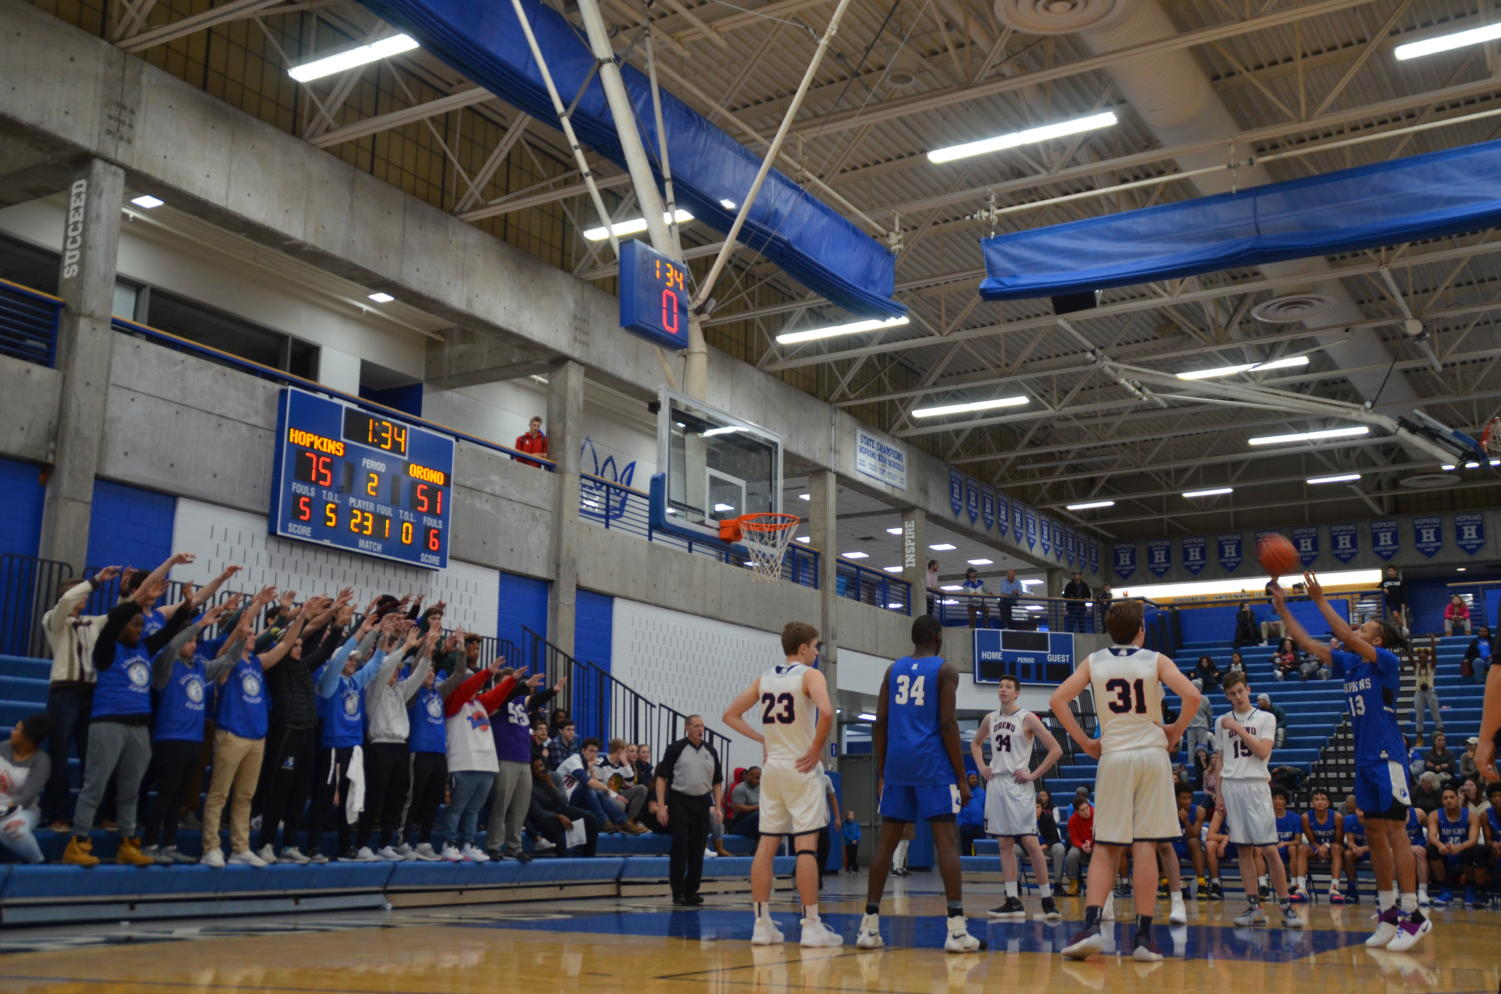 Rayquan Valentin, senior, shoots a free throw in the win against Orono. Valentin hit multiple three pointers in the game.